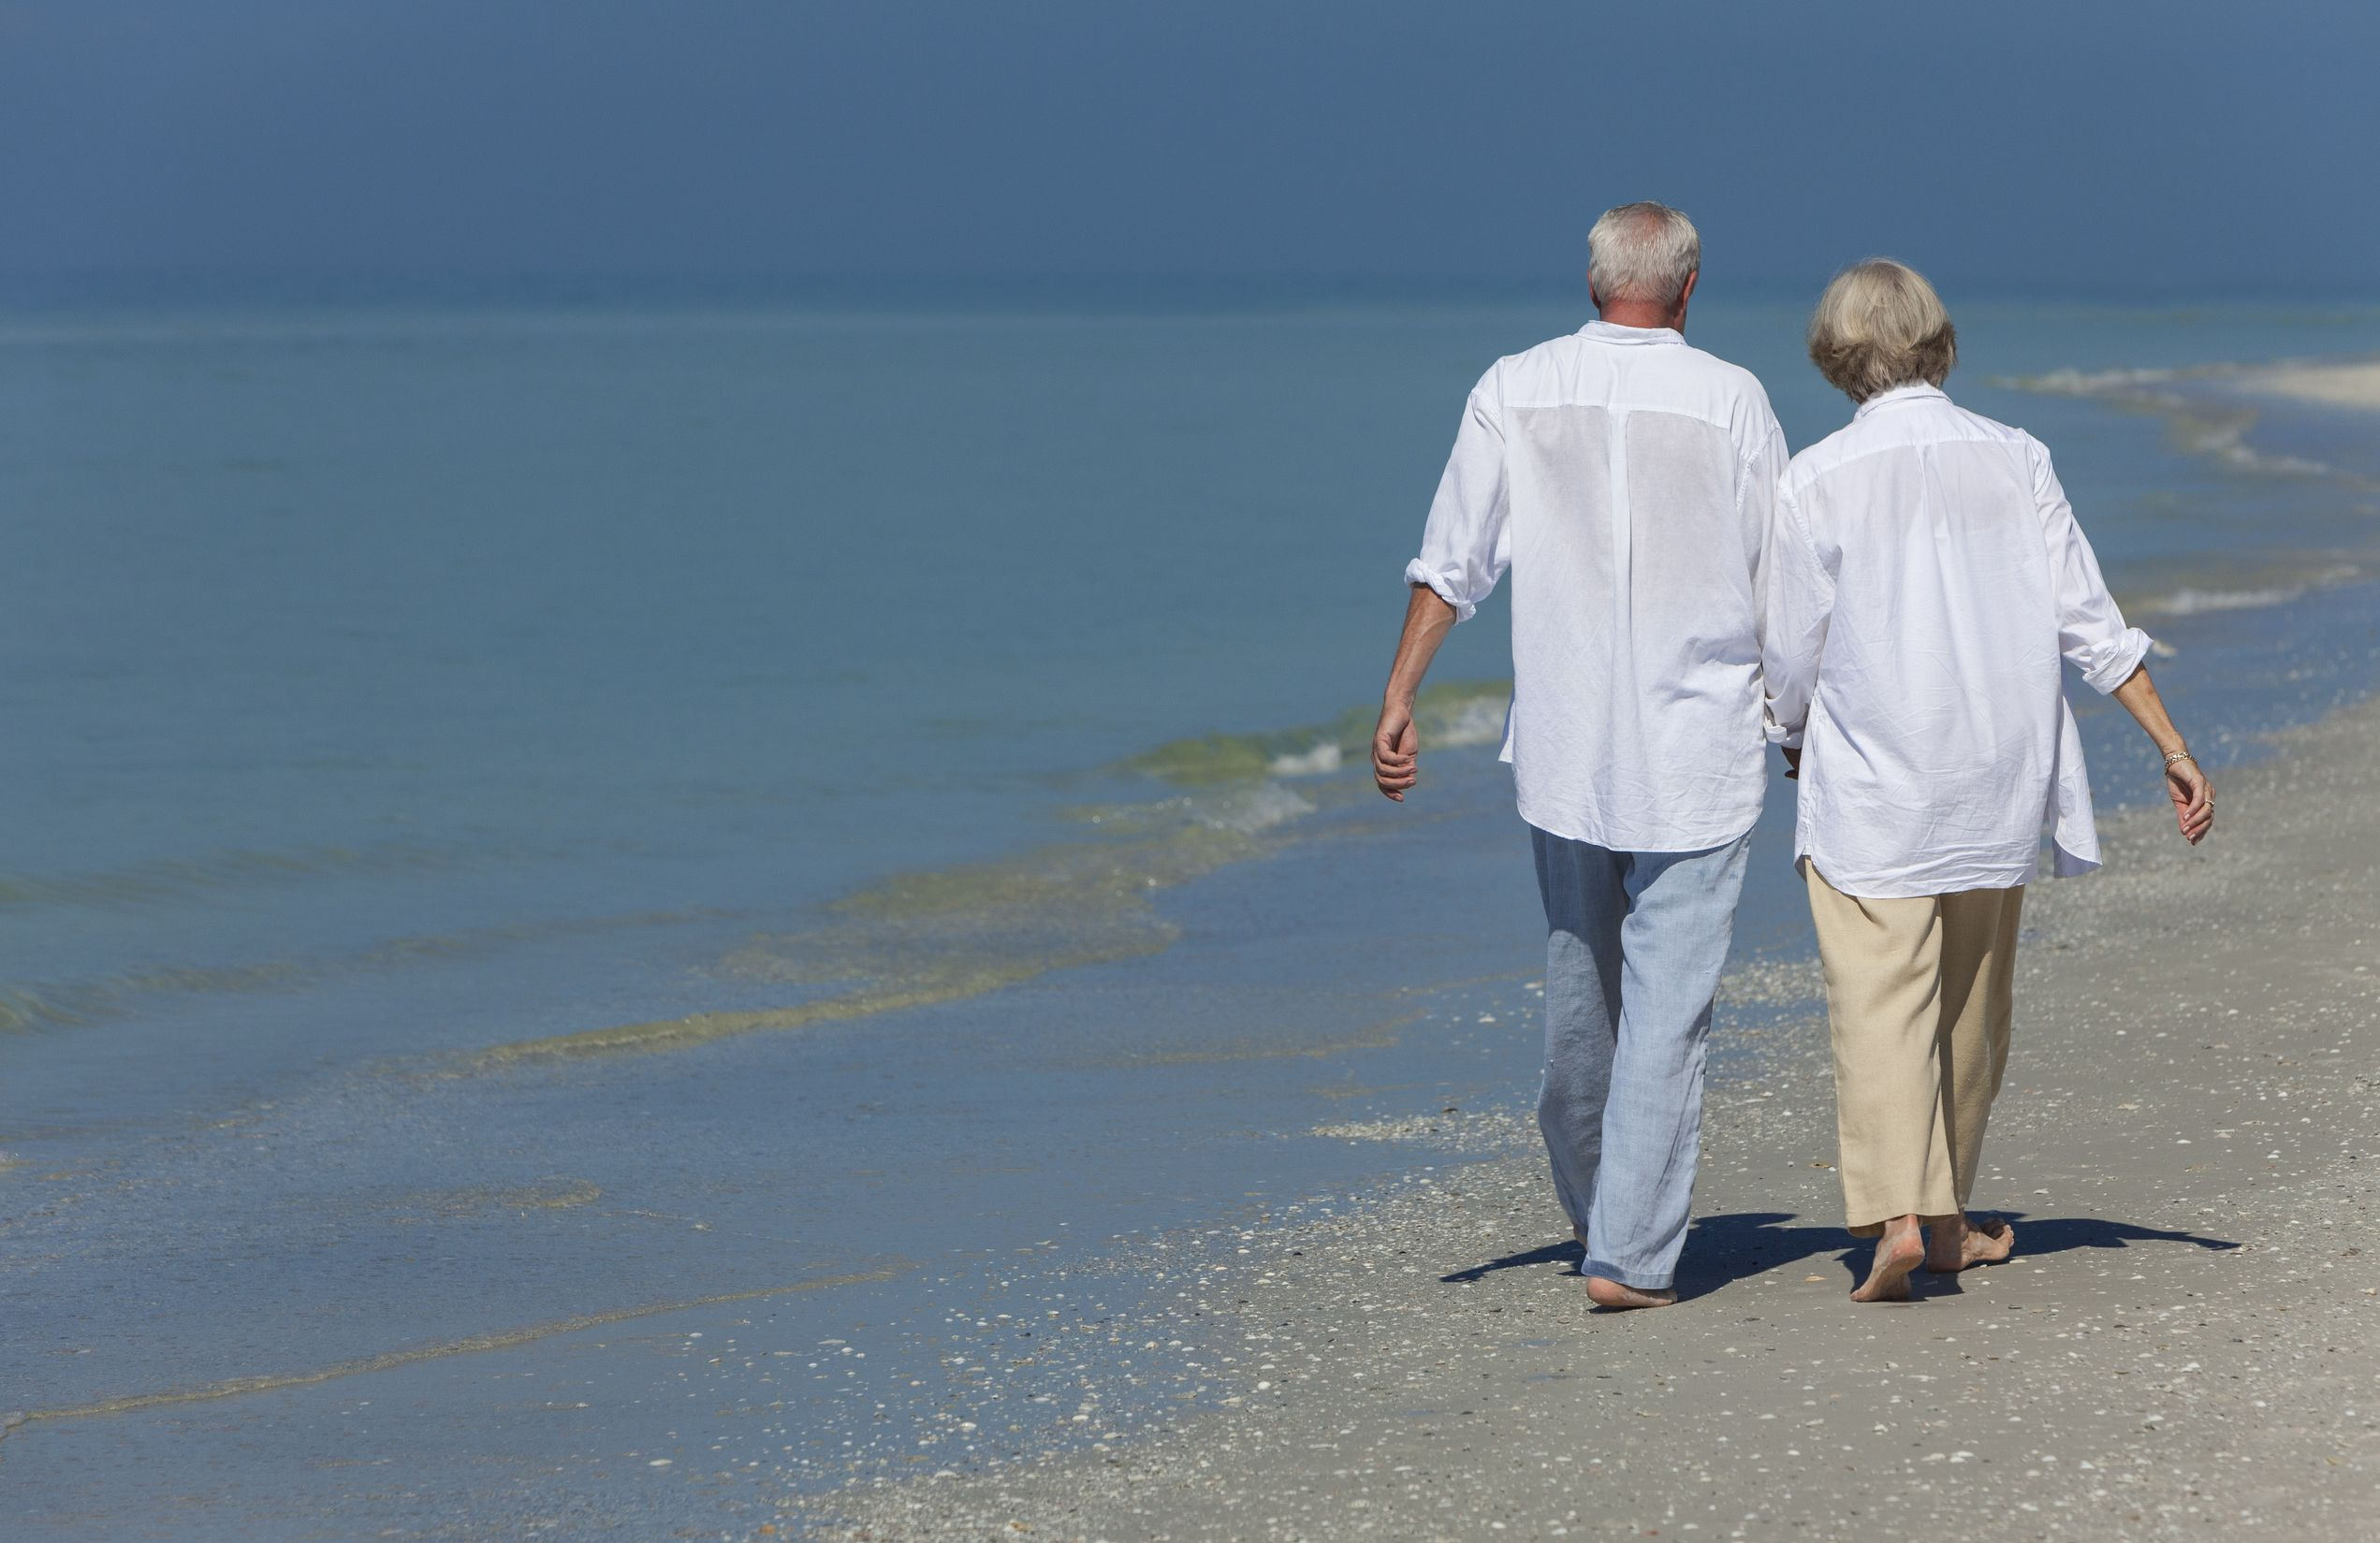 dmbaker130600007.jpg - rear view of happy senior man and woman couple walking and holding hands on a deserted tropical beach with bright clear blue sky